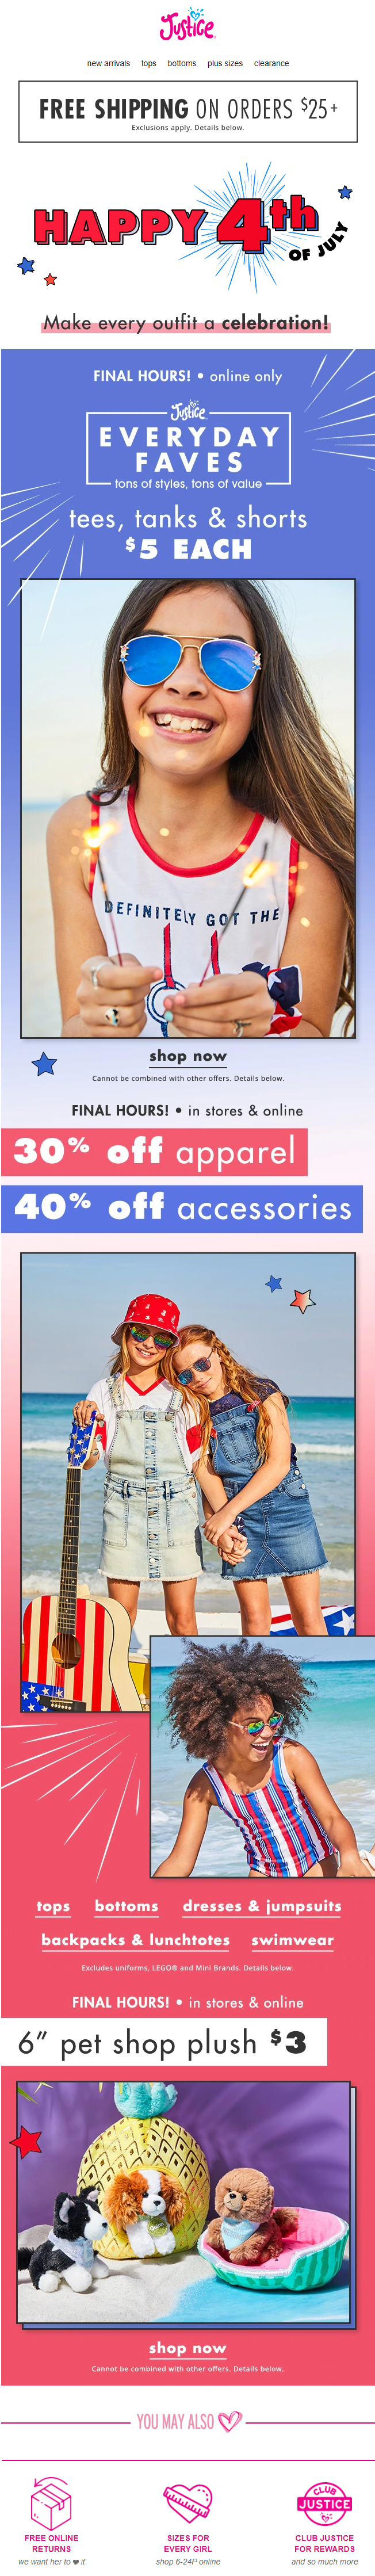 justice-final-hours-for-5-tees-tanks-and-shorts